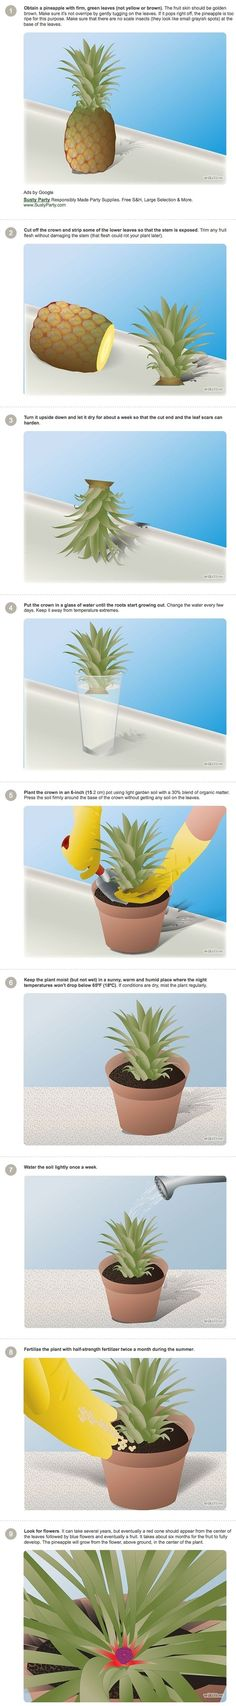 a Pineapple How to grow a pineapple tree! i have dune this it is a wonderful plant @ DIY Home DesignHow to grow a pineapple tree! i have dune this it is a wonderful plant @ DIY Home Design Vegetable Garden, Garden Plants, Indoor Plants, Herb Garden, Container Gardening, Gardening Tips, Dream Garden, Home And Garden, Green Life